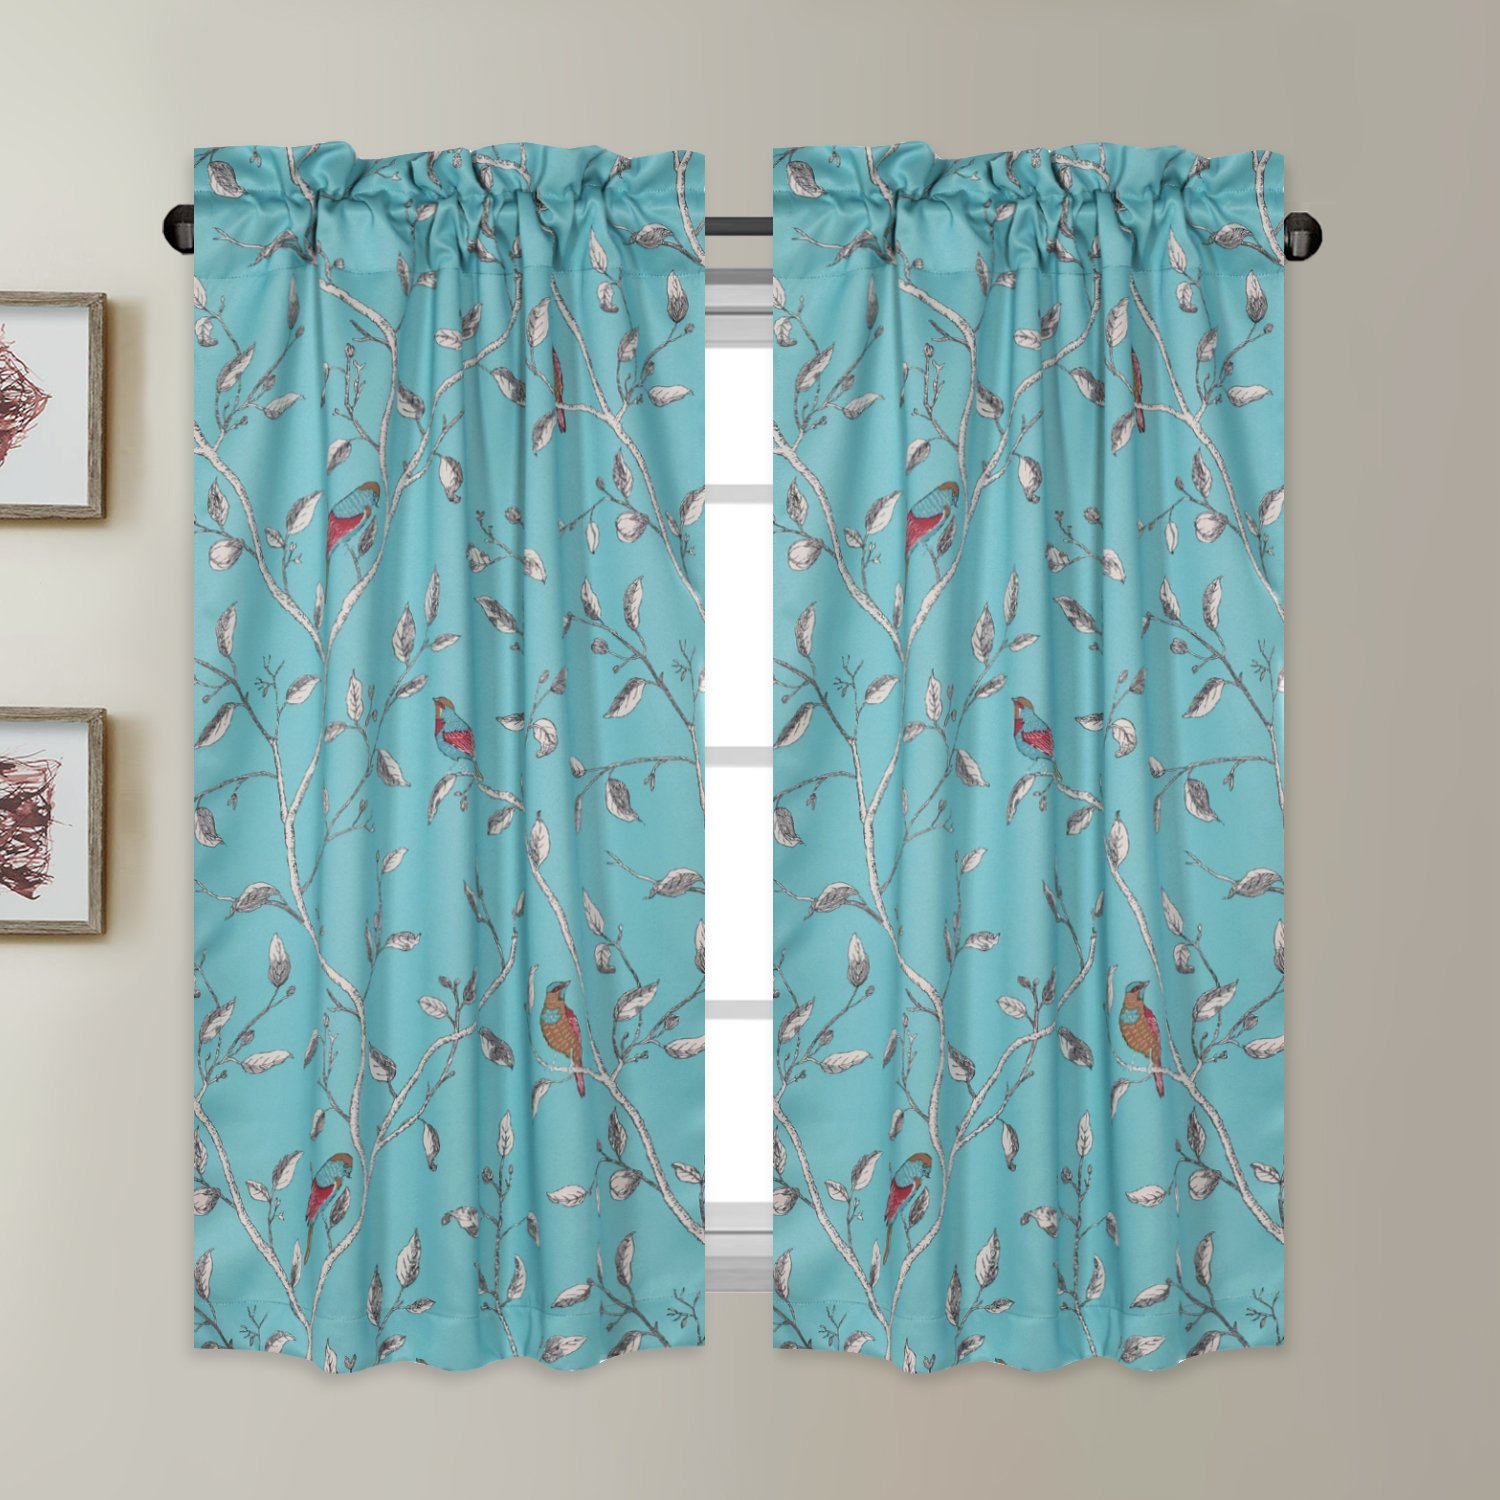 """Window Treatment Short Curtains - Pair of Home Decor Thermal Insulated Energy Smart Half Window Drapes Blackout Rod Pocket Curtain Panels - Turquoise Blue Birds Pattern - (58""""W x 45""""L Pair)"""